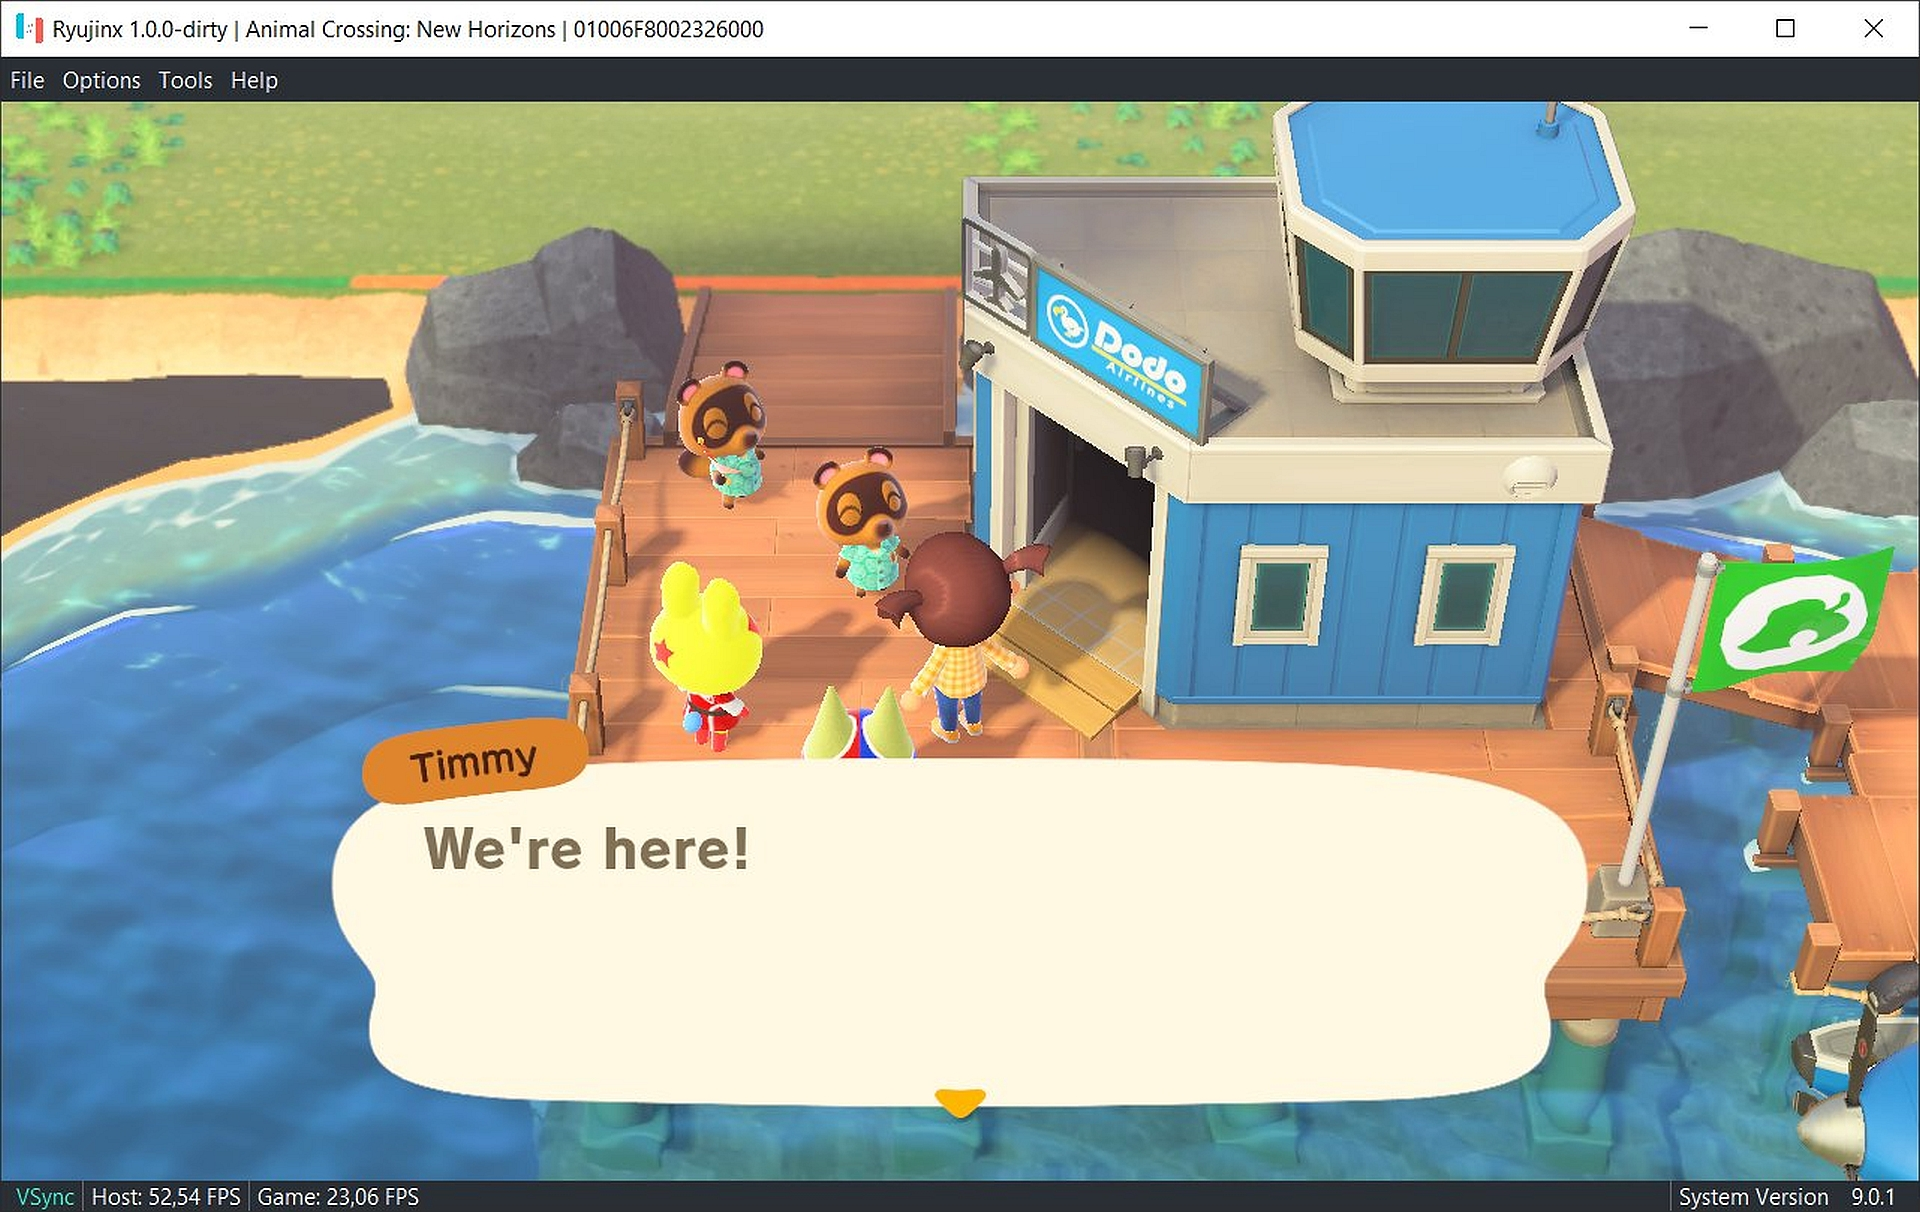 Animal Crossing New Horizons Already Works On Pc Through Ryujinx Emulator